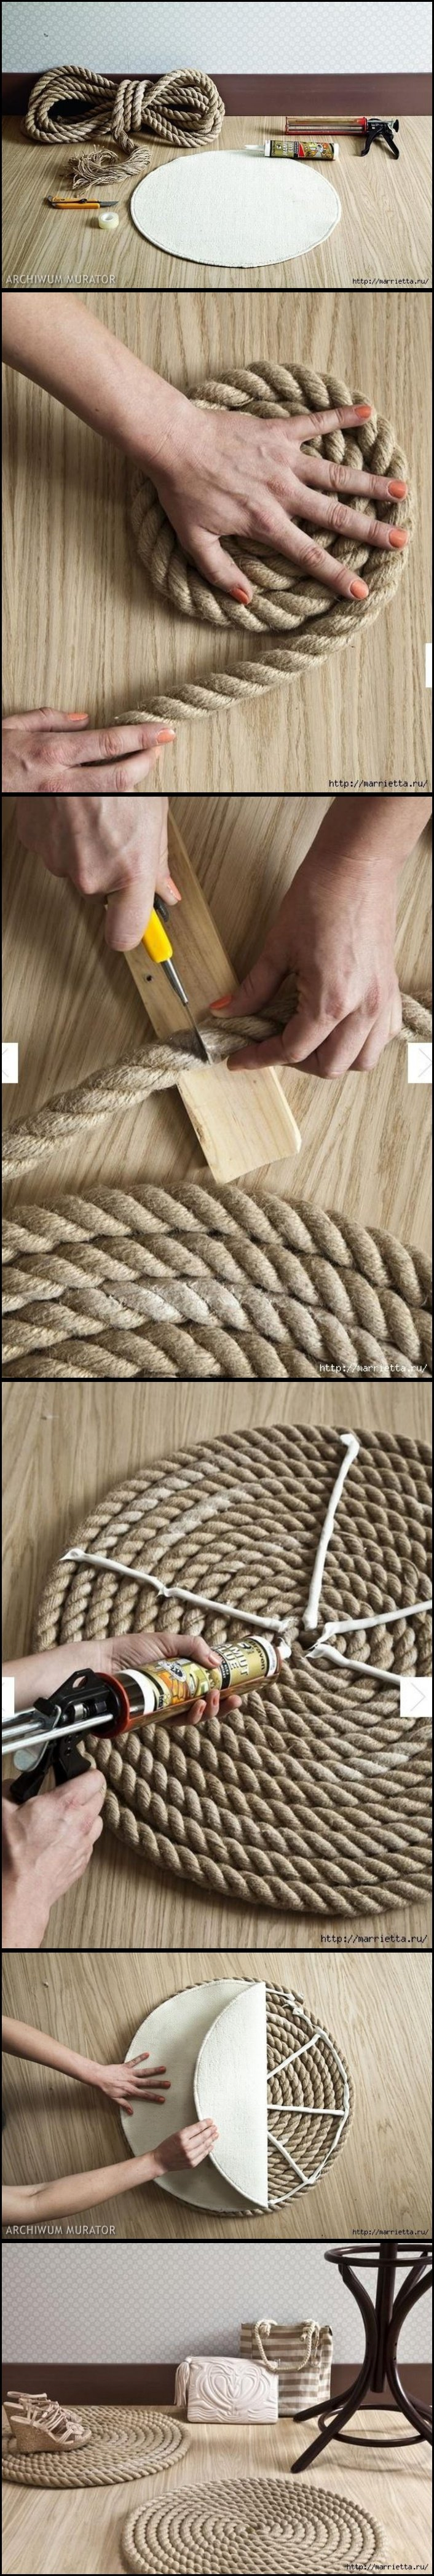 DIY Simple Rope Rug